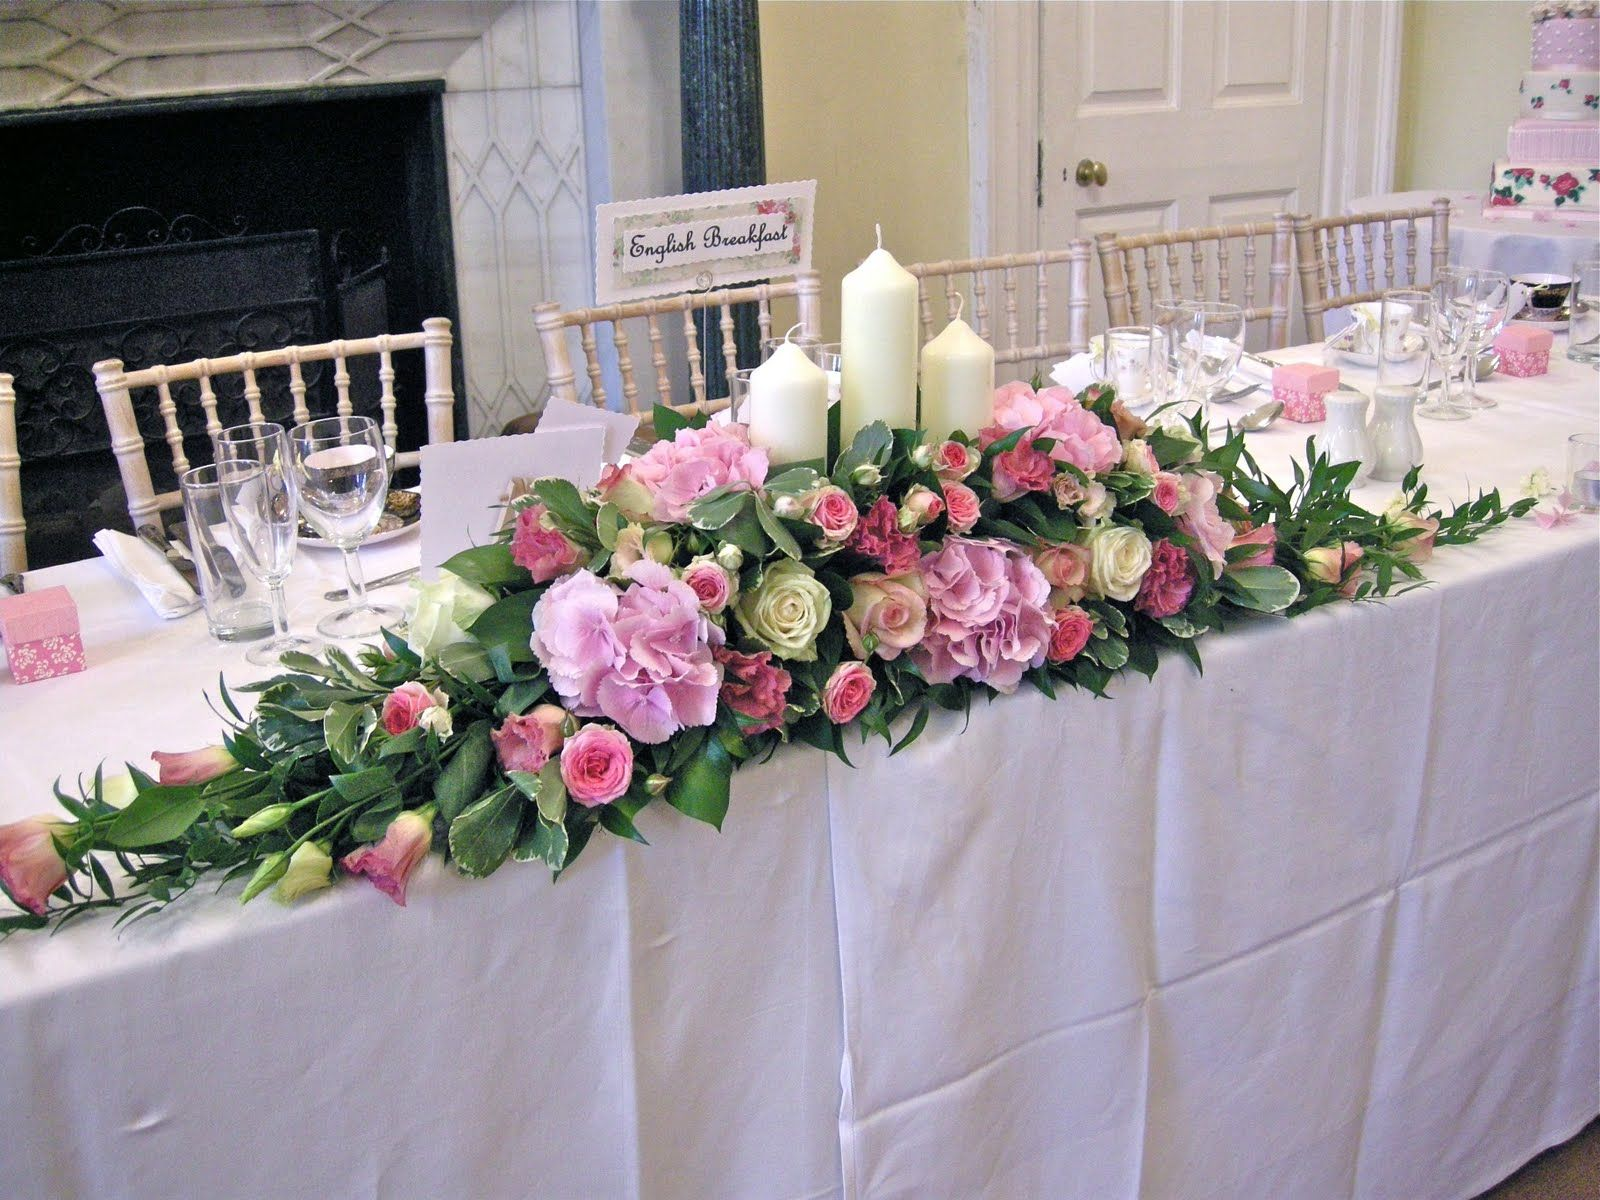 Wedding Tables With Candles Bing Images Top Table Flowers Flower Arrangements